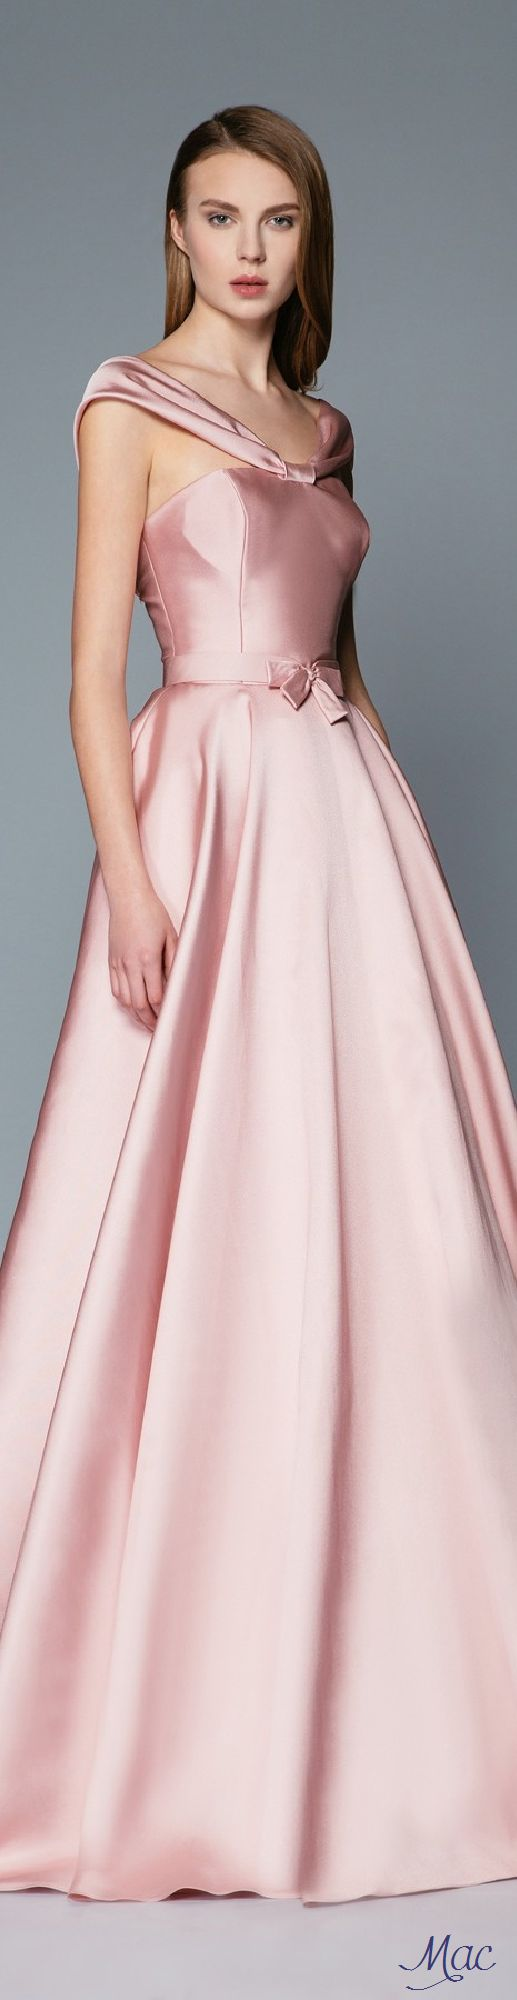 205 best blush pink wedding dresses images on pinterest fall 2016 ready to wear gh by georges hobeika ombrellifo Gallery